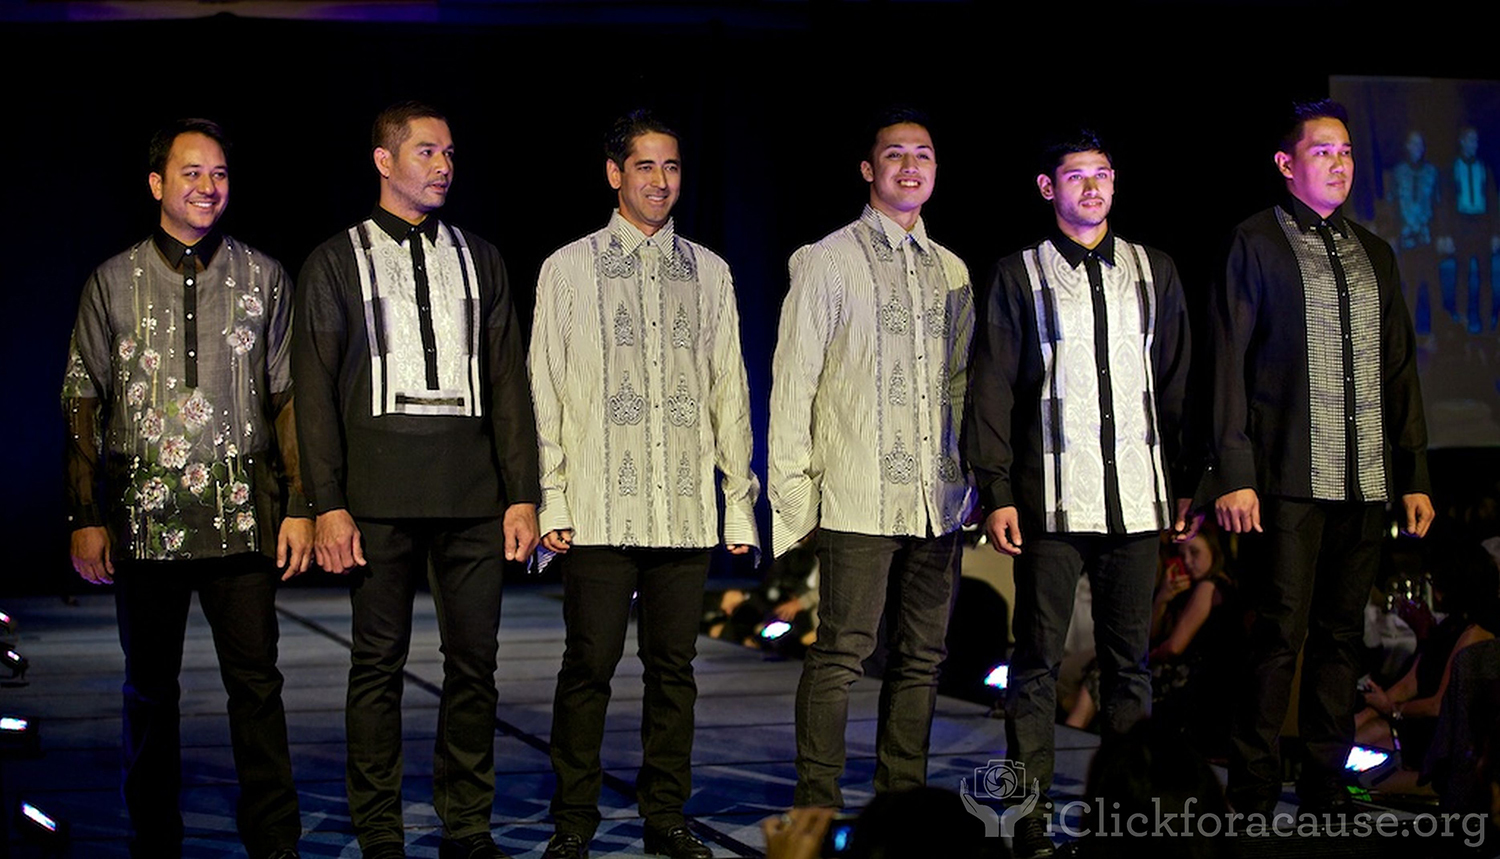 """Ramos' famous barong designs modeled at PIA's """"Holiday Haute Couture XII""""  (Photo by iClickforacause.org)"""